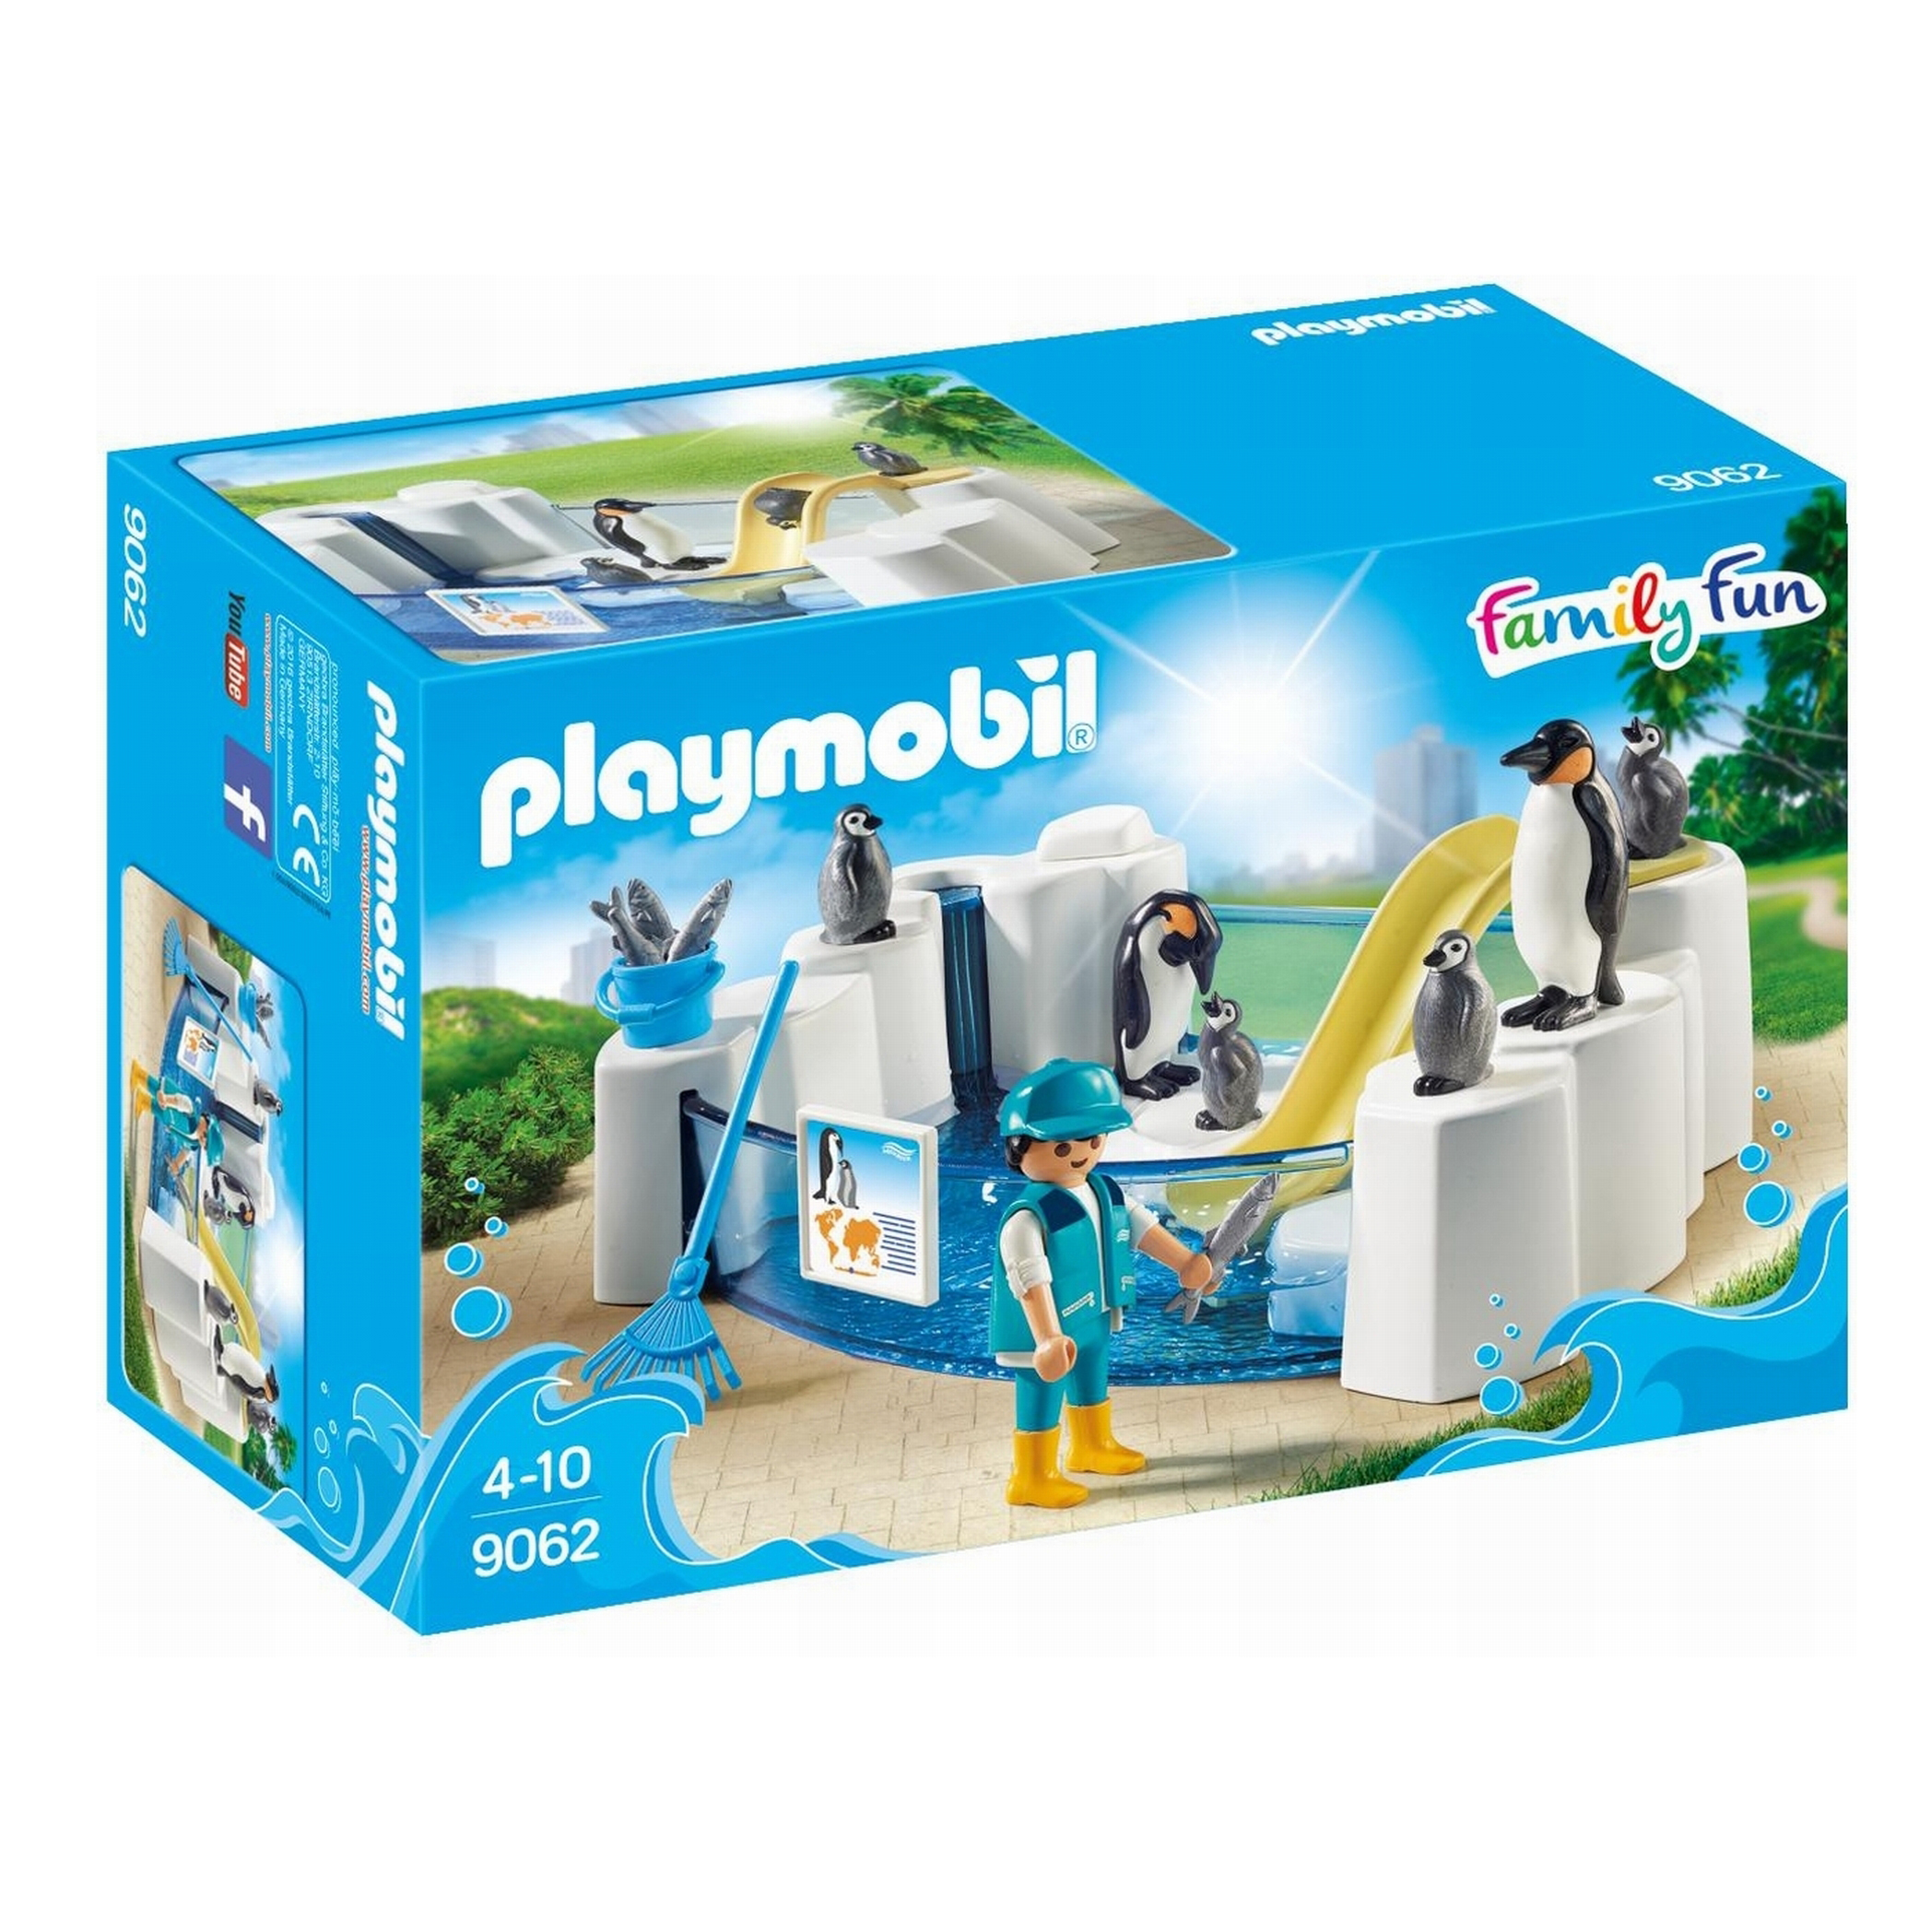 Playmobil Family Fun Penguin Enclosure 9062